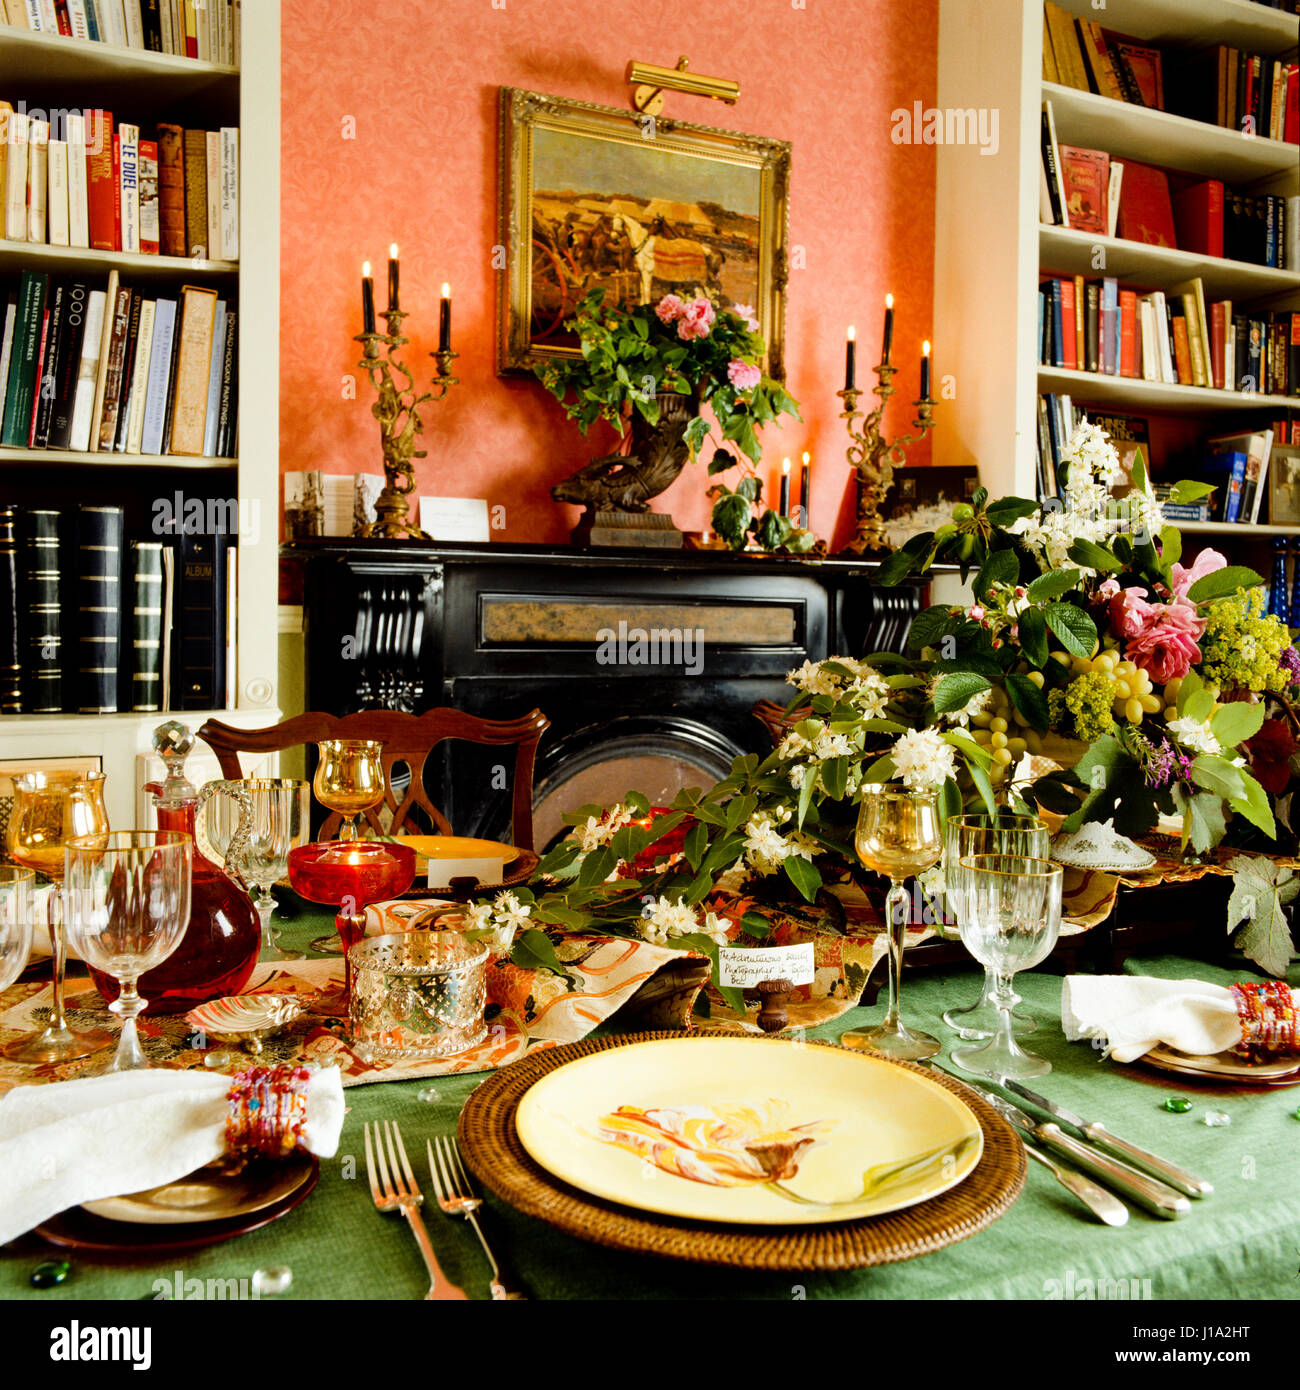 Set table with flowers. - Stock Image